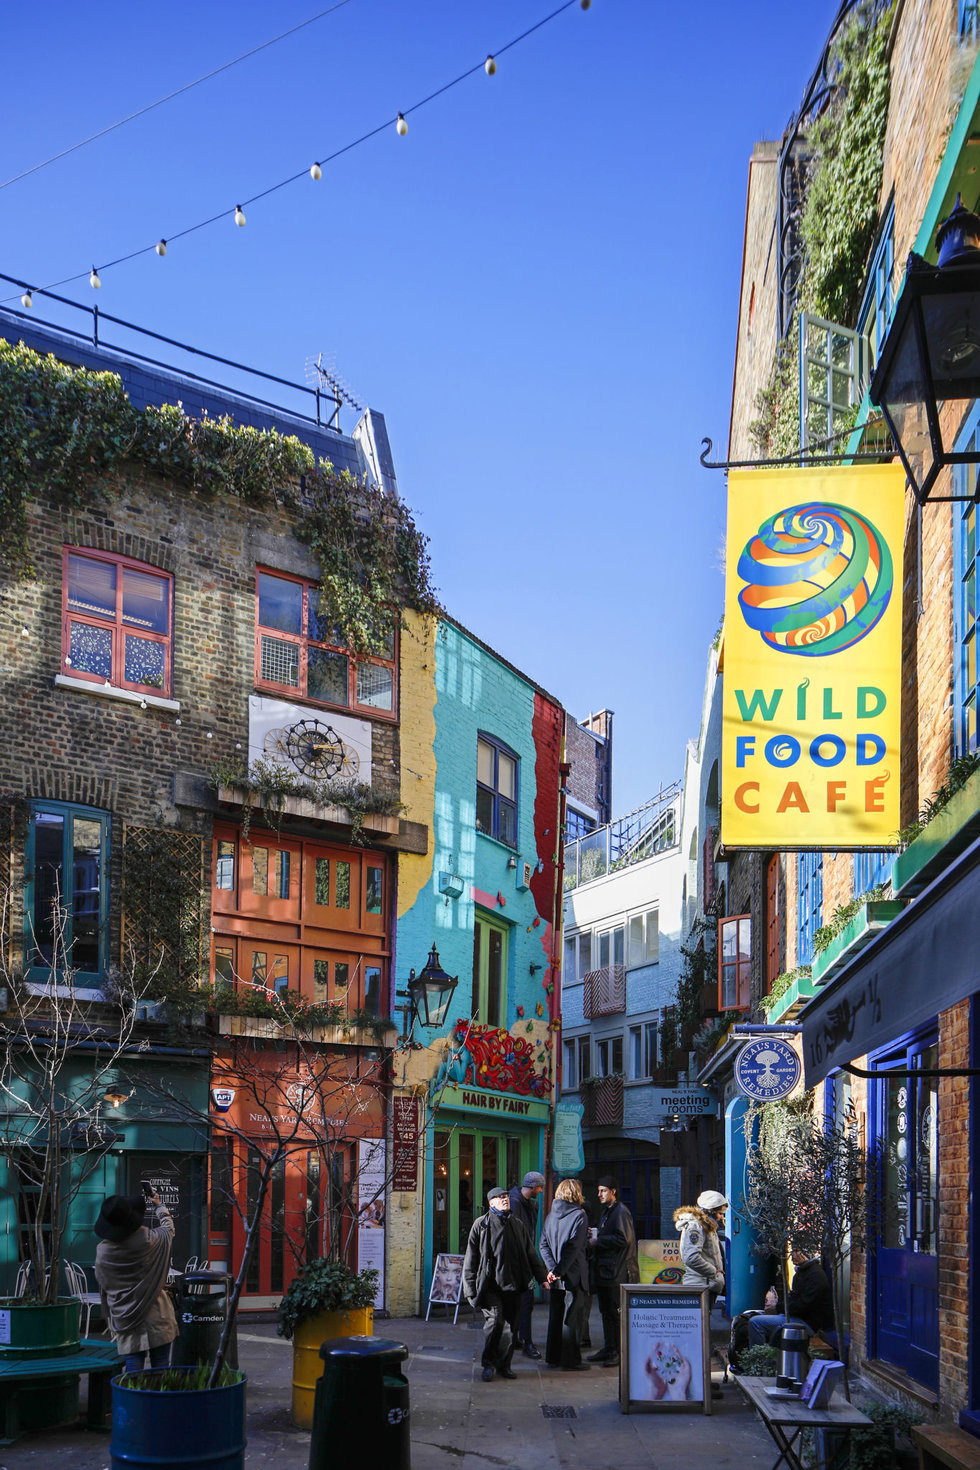 Neal's Yard, a colorful bohemian alley in Covent Garden